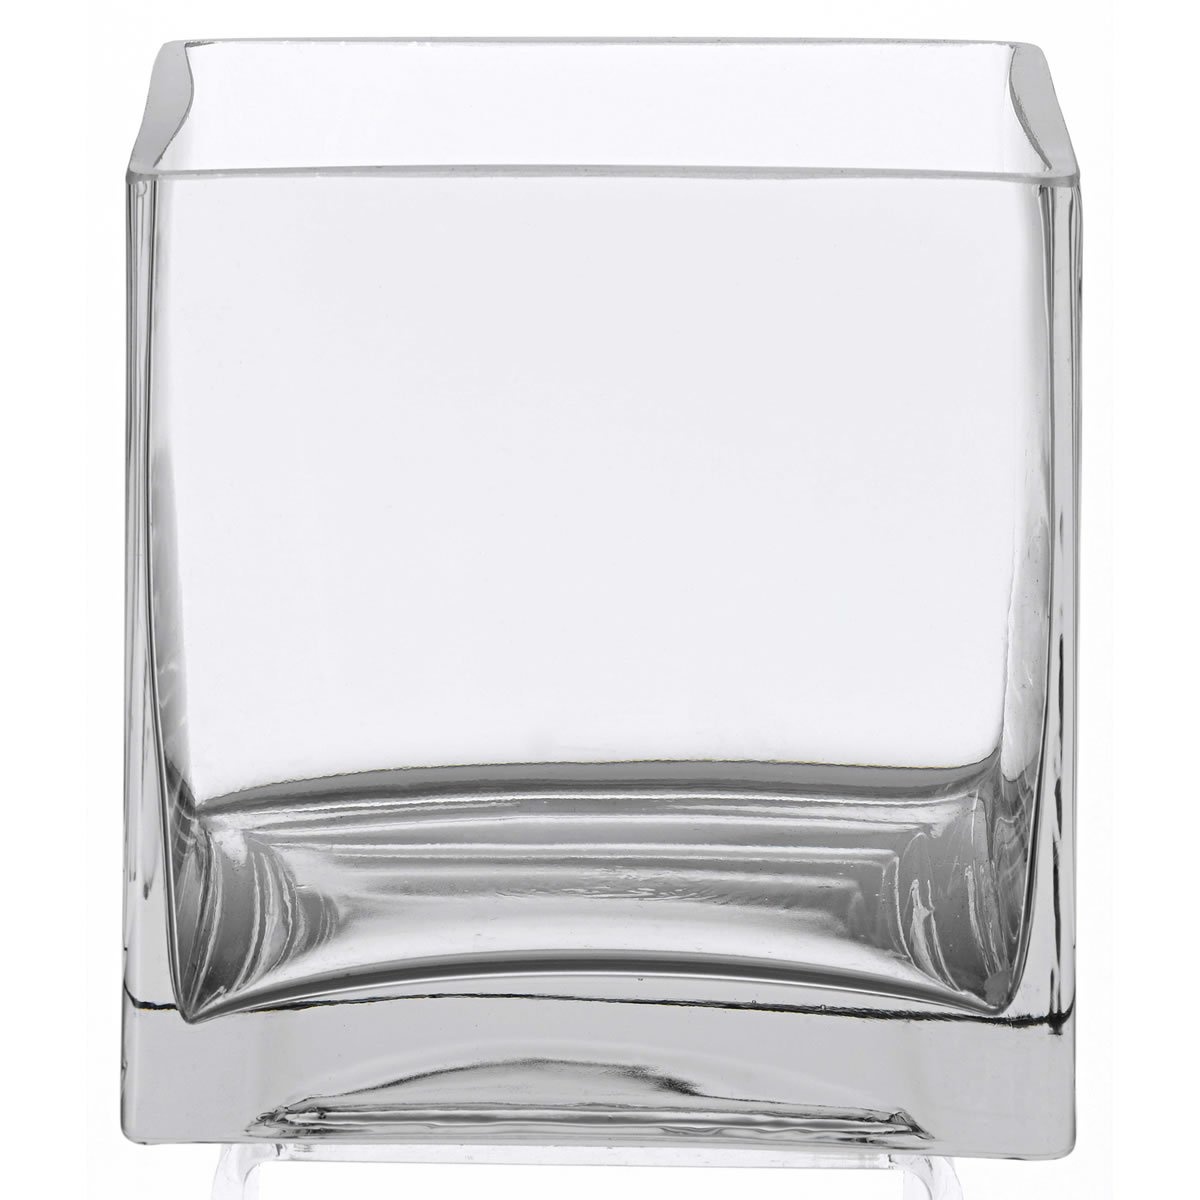 6 clear glass square vases